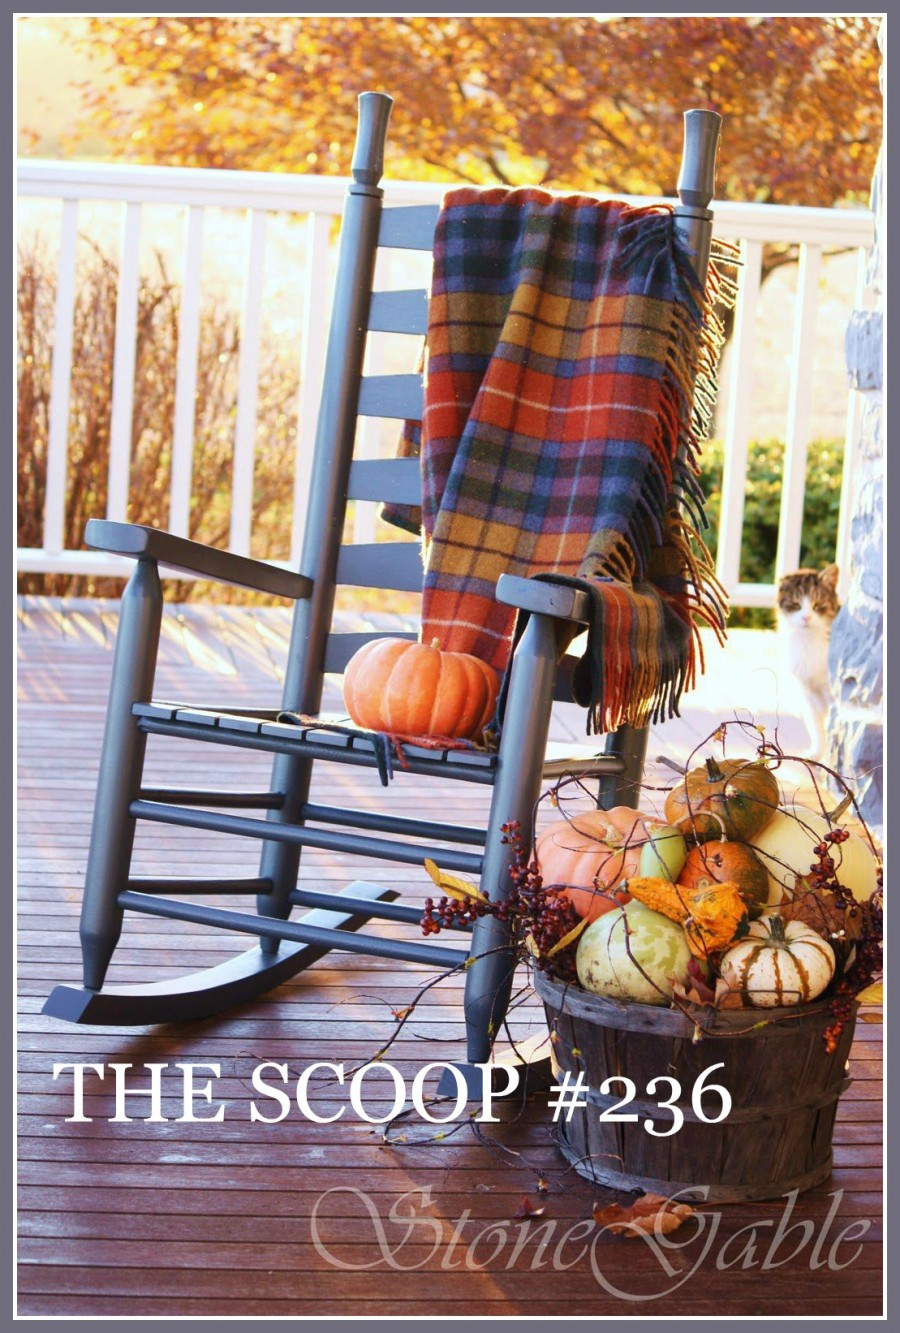 THE SCOOP- The best of home and garden blogs